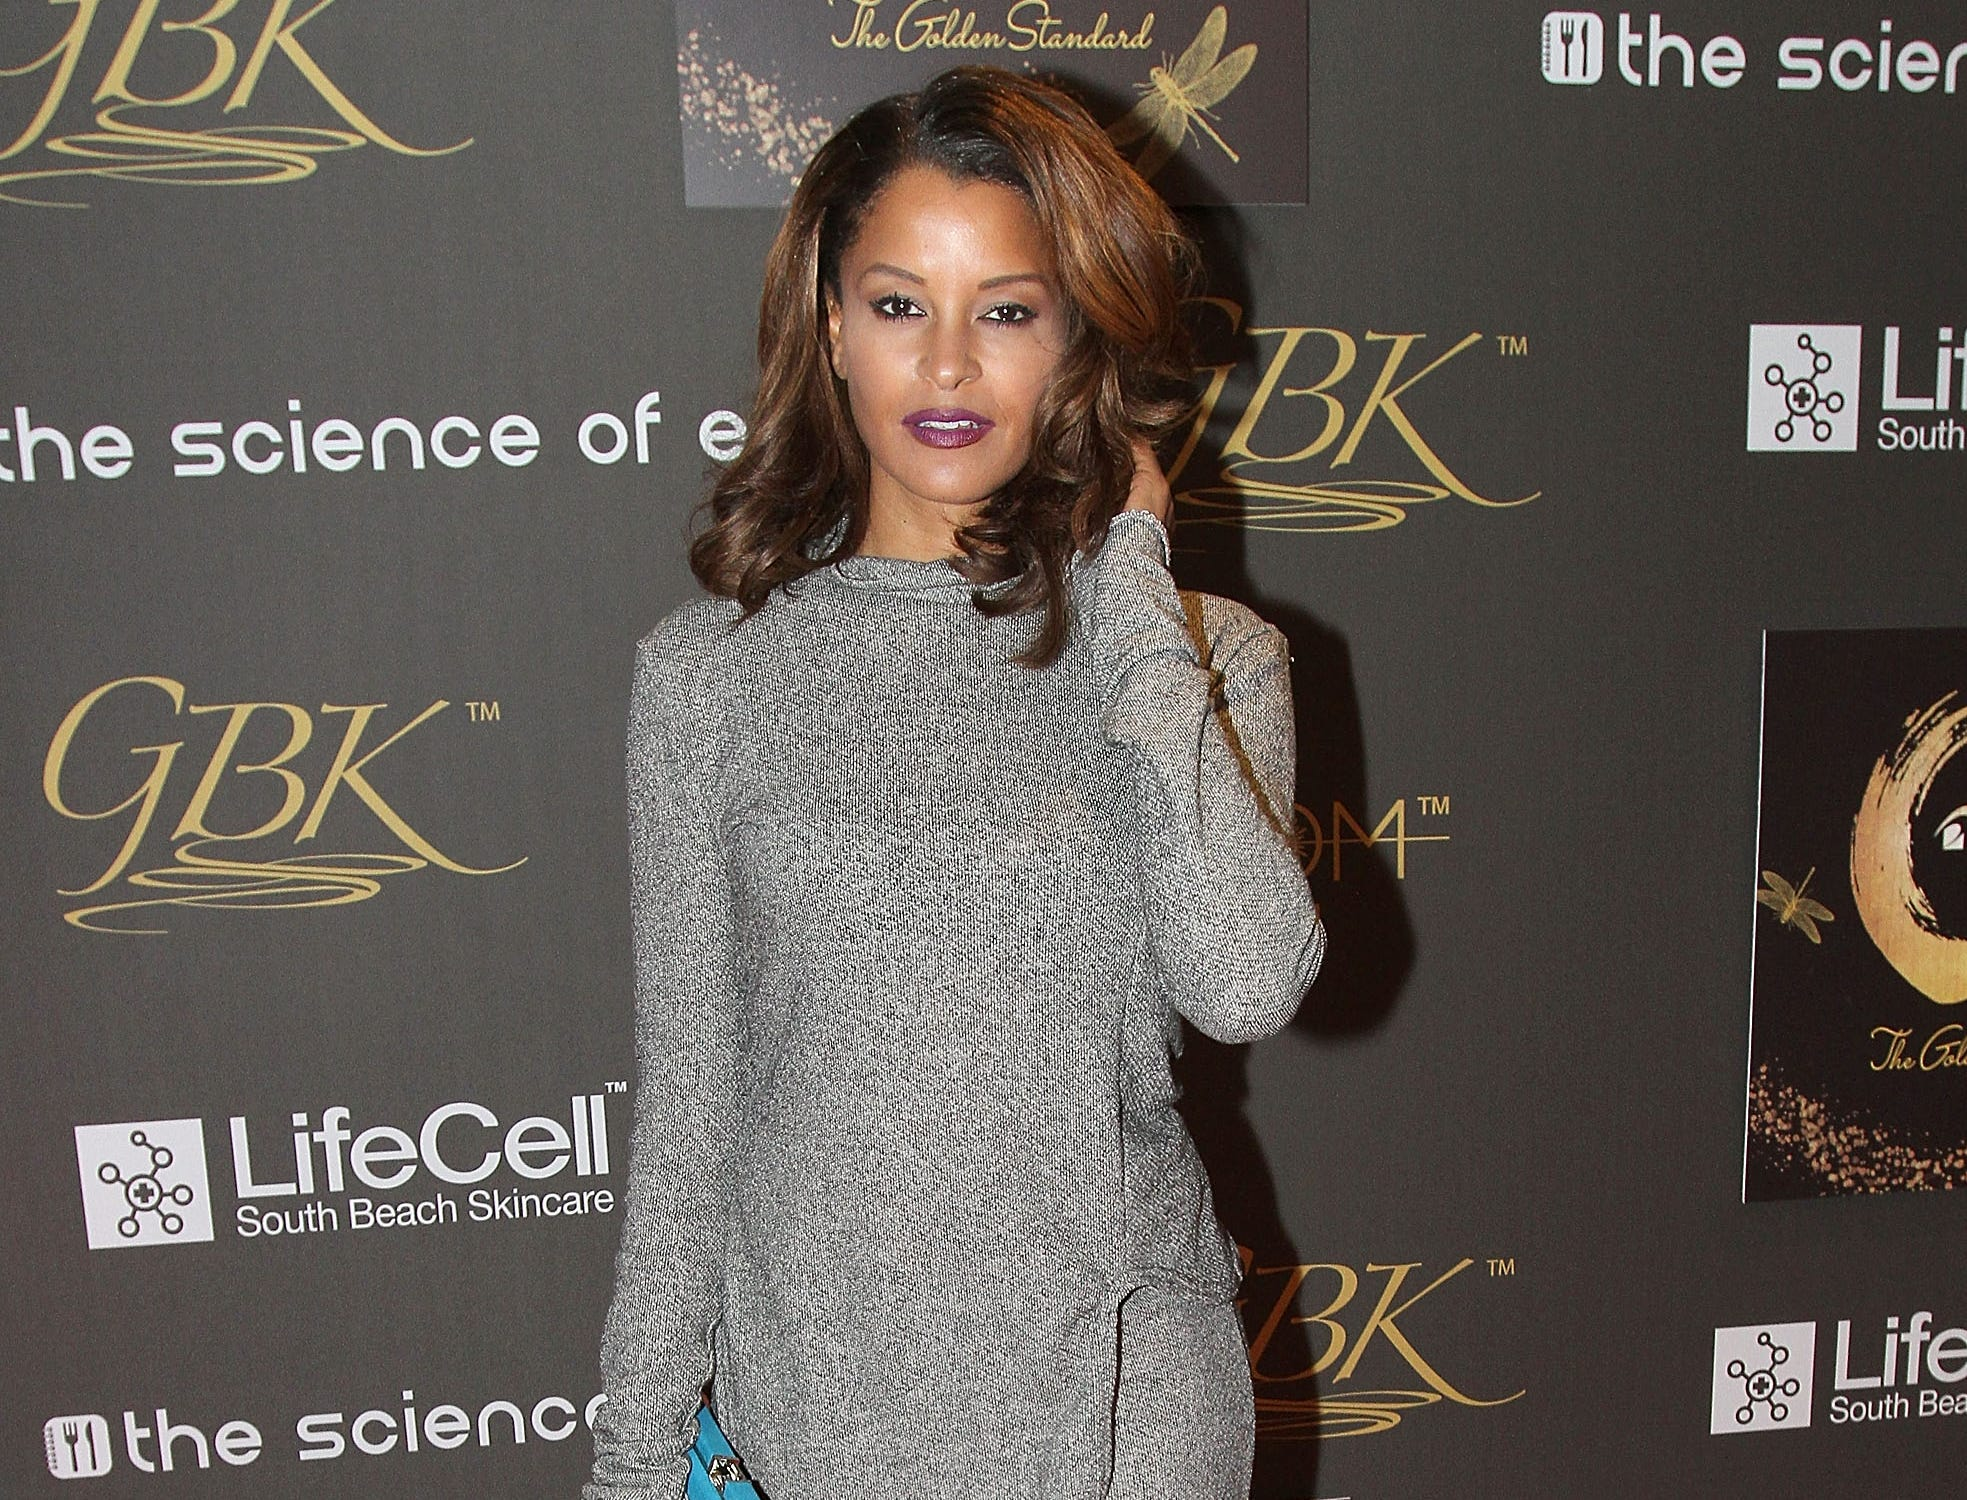 HOLLYWOOD, CA - JANUARY 09:  Claudia Jordan attends GBK & Pilot Pen Golden Globes 2016 Luxury Lounge - Day 2 at W Hollywood on January 9, 2016 in Hollywood, California.  (Photo by Maury Phillips/Getty Images for GBK Productions) ORG XMIT: 598653753 ORIG FILE ID: 504265774